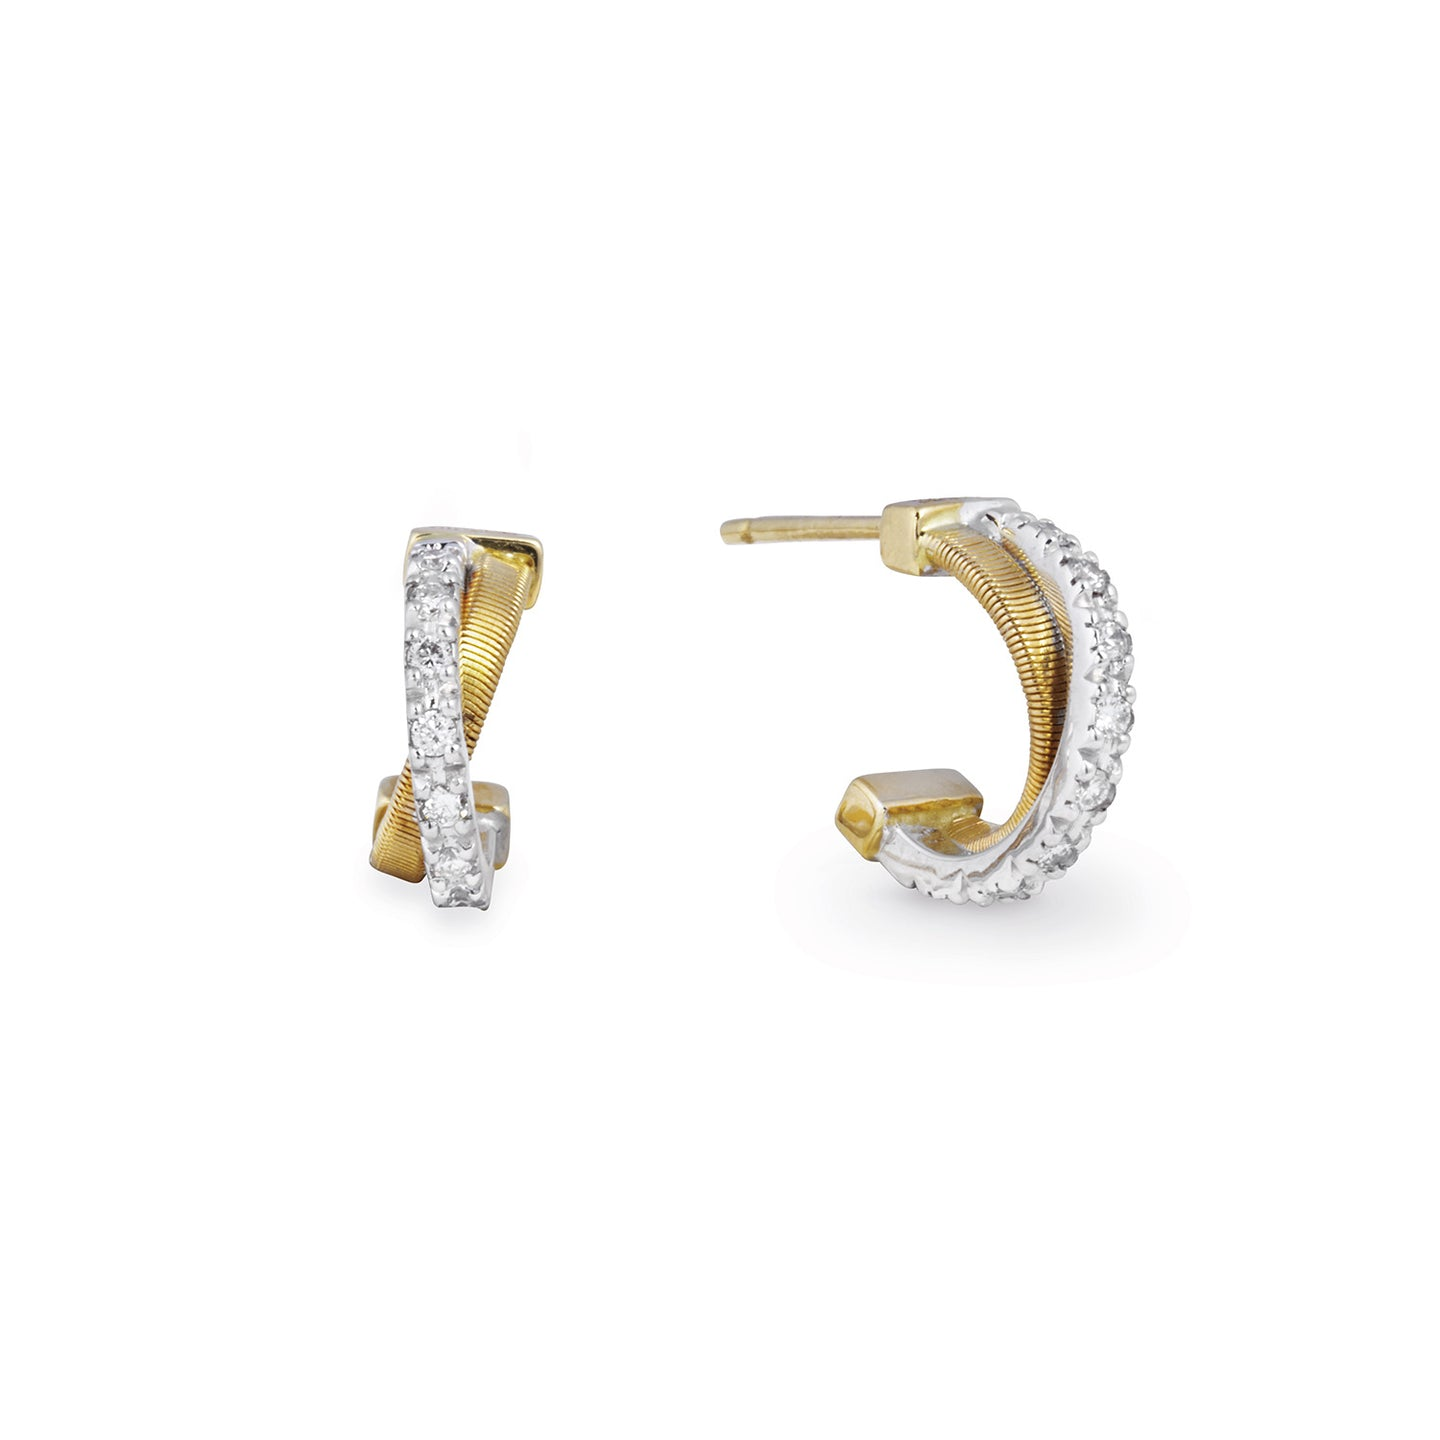 Marco Bicego Goa Yellow Gold and Diamond Crossover Earrings